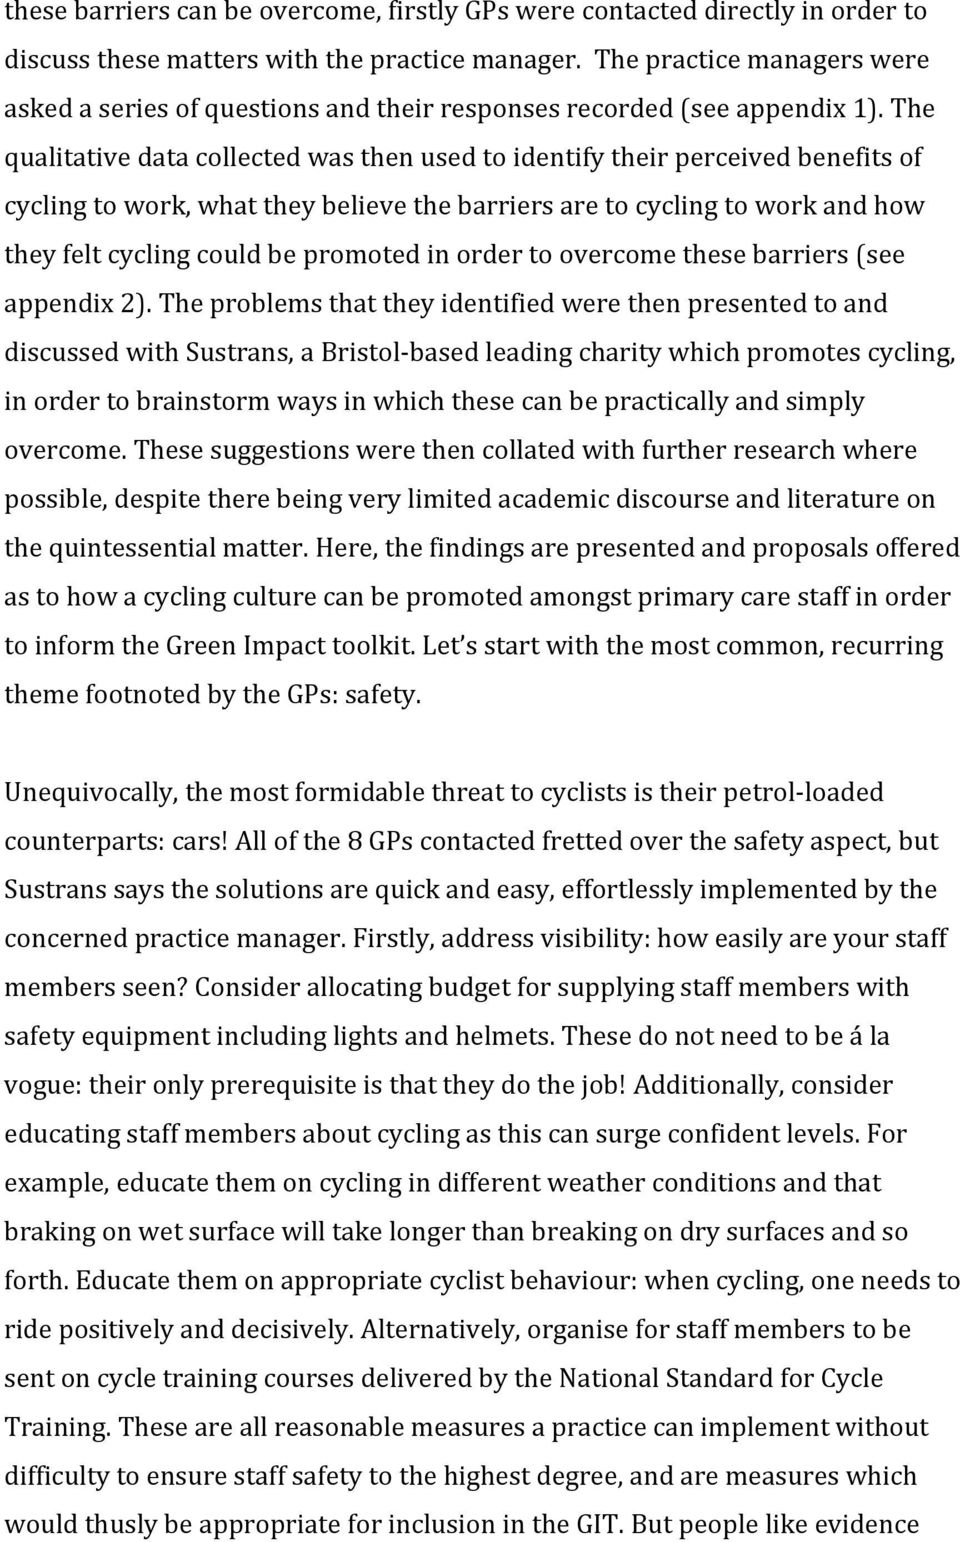 The qualitative data collected was then used to identify their perceived benefits of cycling to work, what they believe the barriers are to cycling to work and how they felt cycling could be promoted